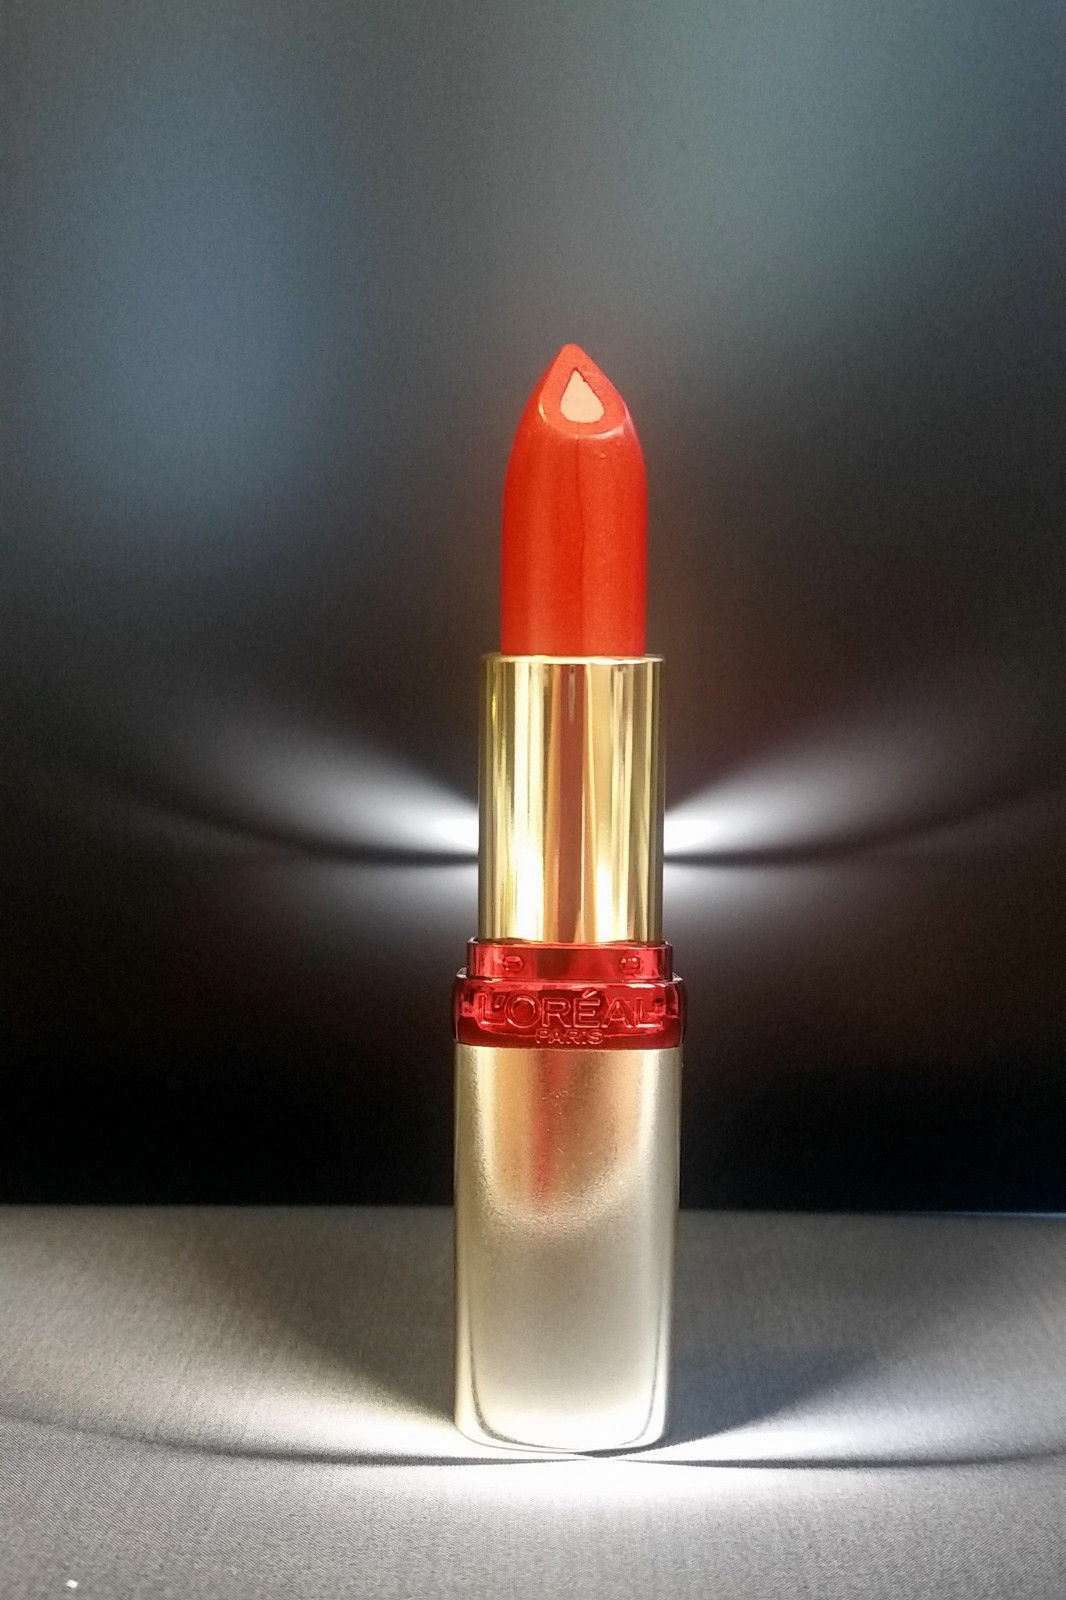 Loreal Color Riche Lippenstift Serum Lipstick S402 Radiant Orange Neu